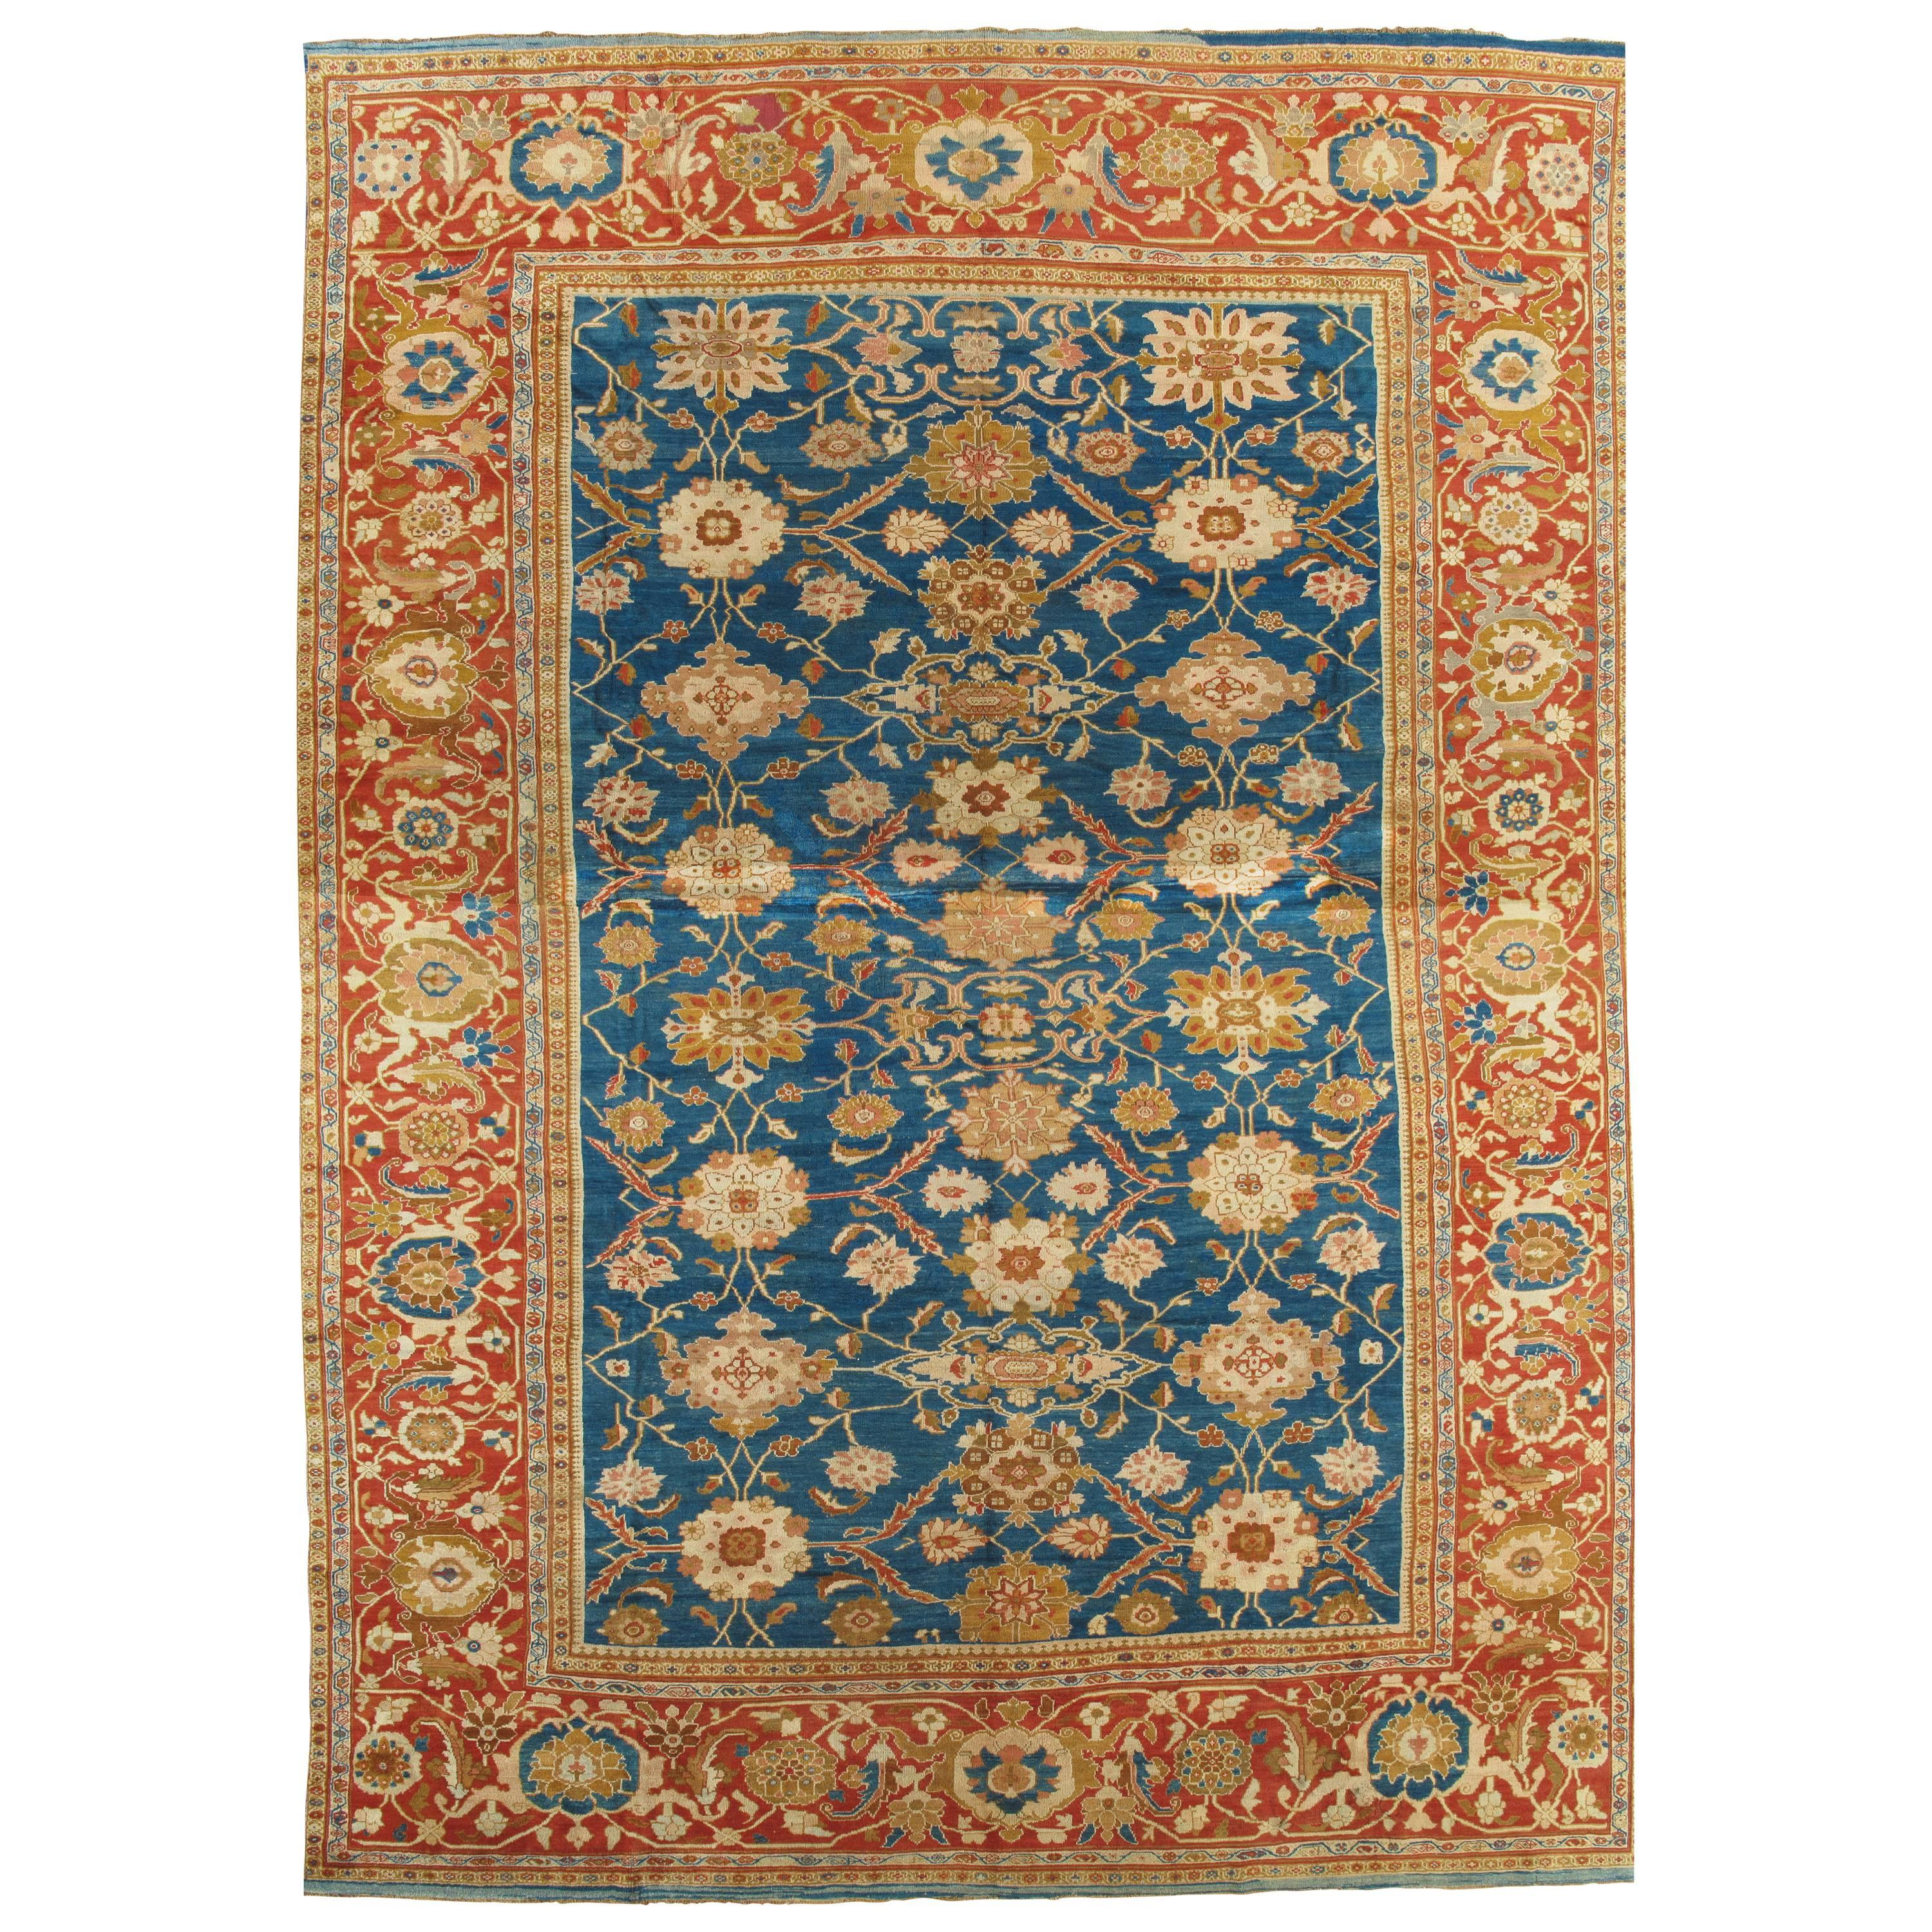 Antique Persian Sultanabad Carpet, Handmade Oriental Rug, Light Blue, Gold Coral